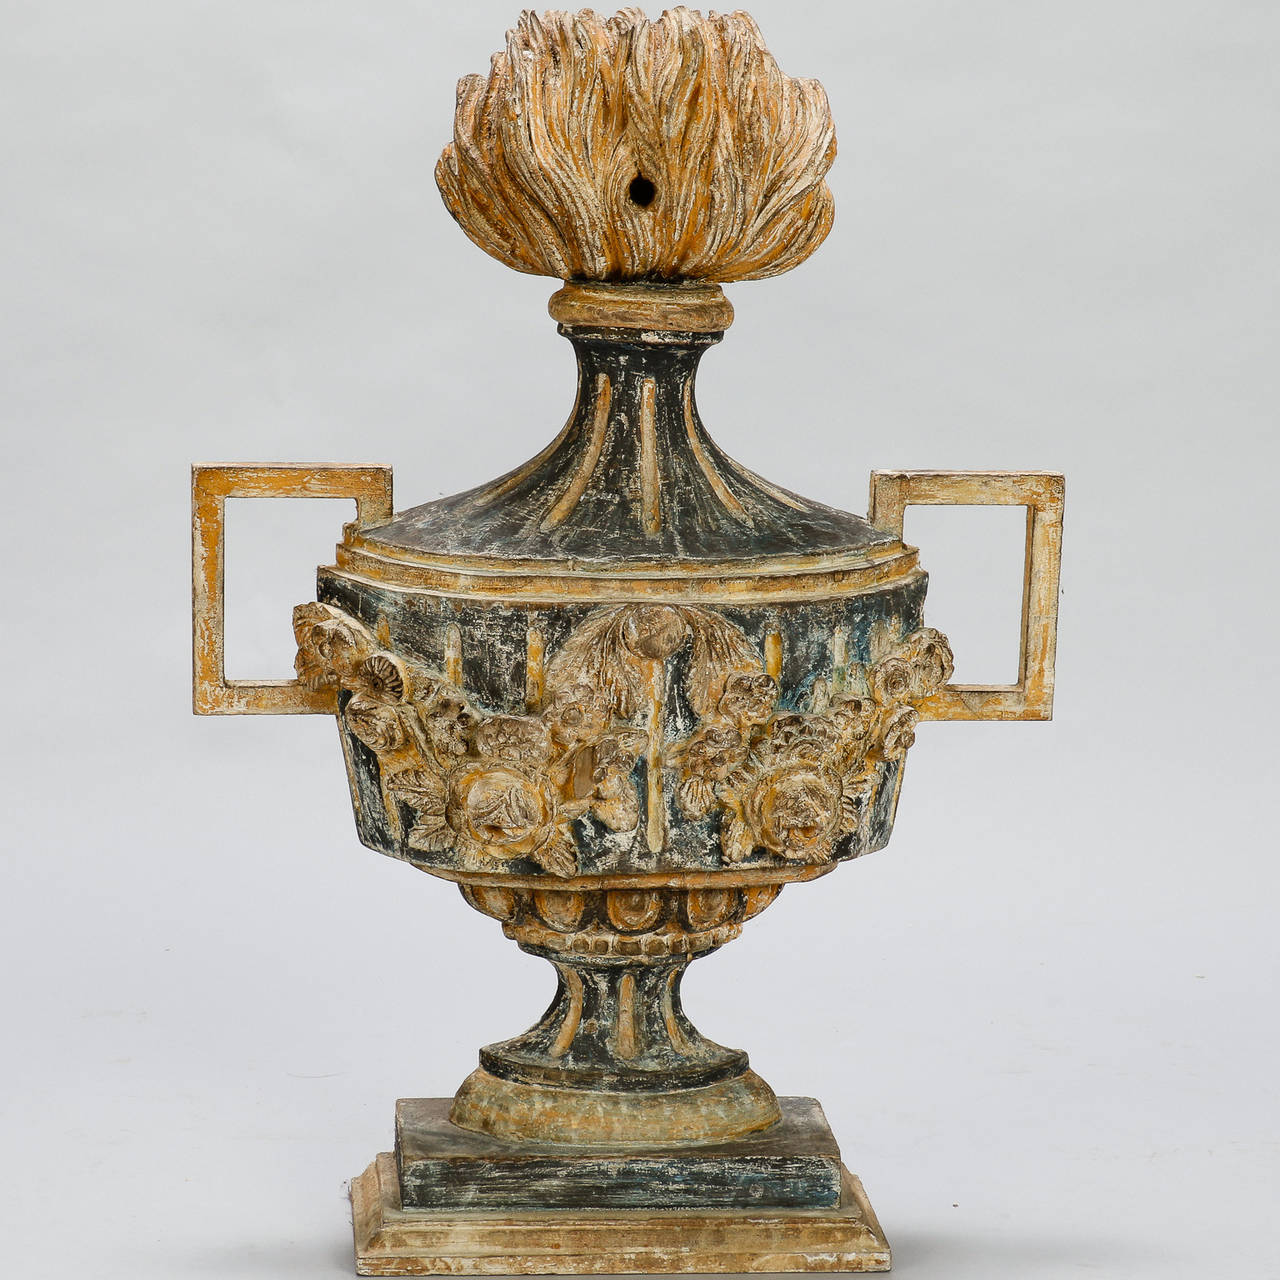 pair of 19th century italian carved wood decorative urns 2 - Decorative Urns